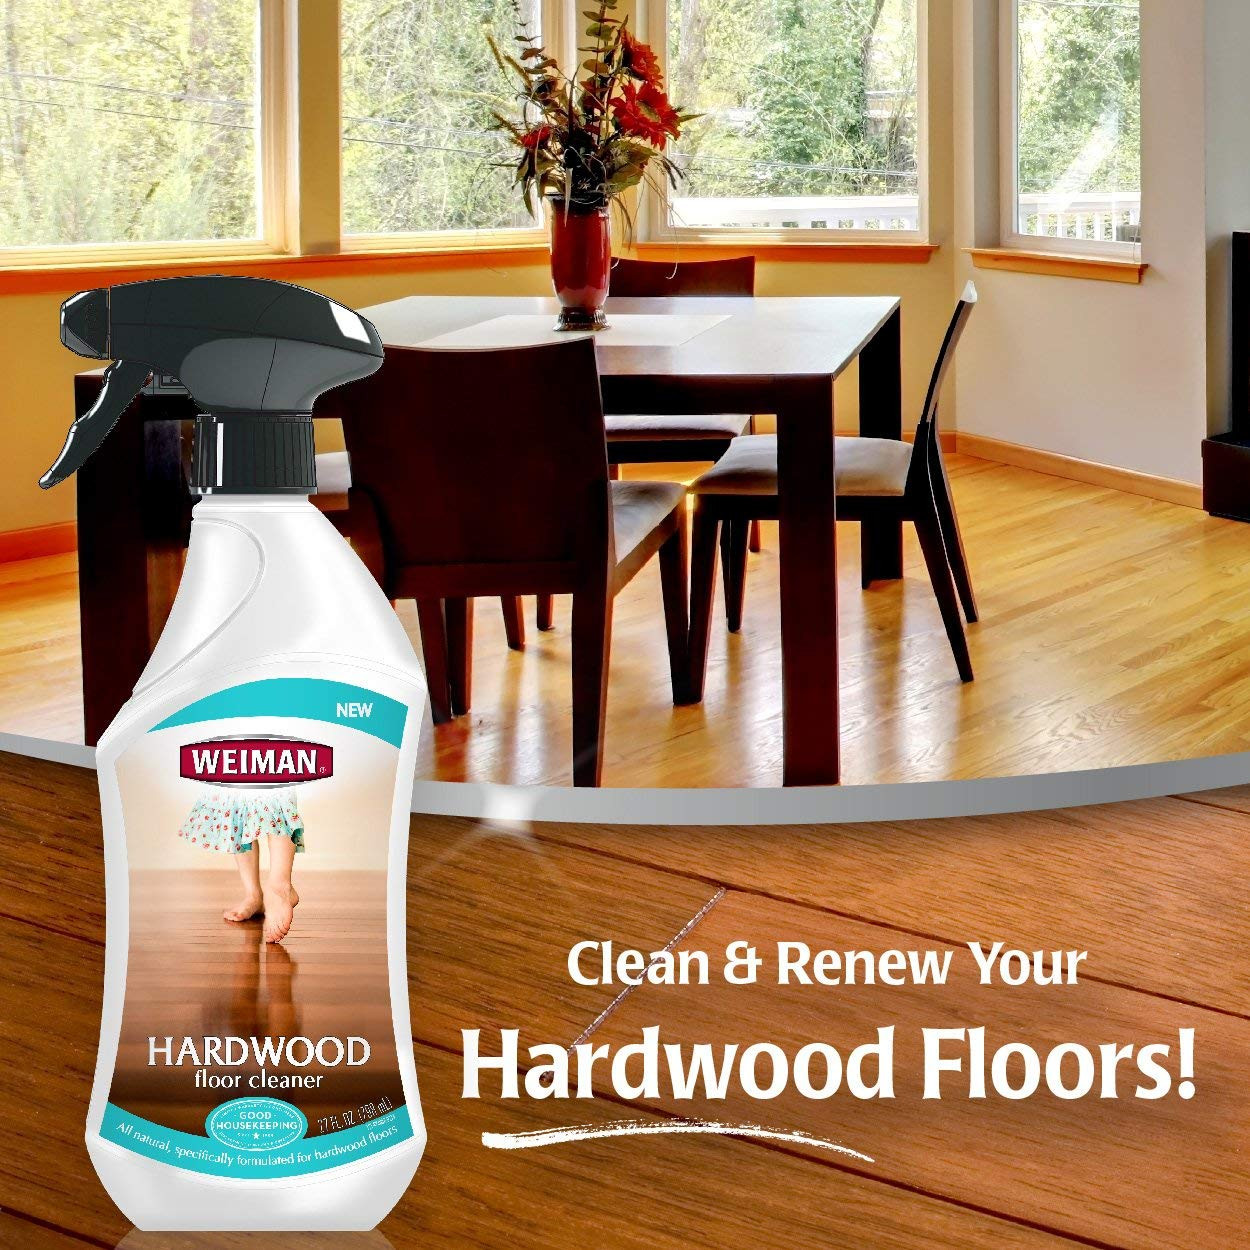 laminate and hardwood flooring difference of amazon com weiman hardwood floor cleaner surface safe no harsh with amazon com weiman hardwood floor cleaner surface safe no harsh scent safe for use around kids and pets residue free 27 oz trigger home kitchen